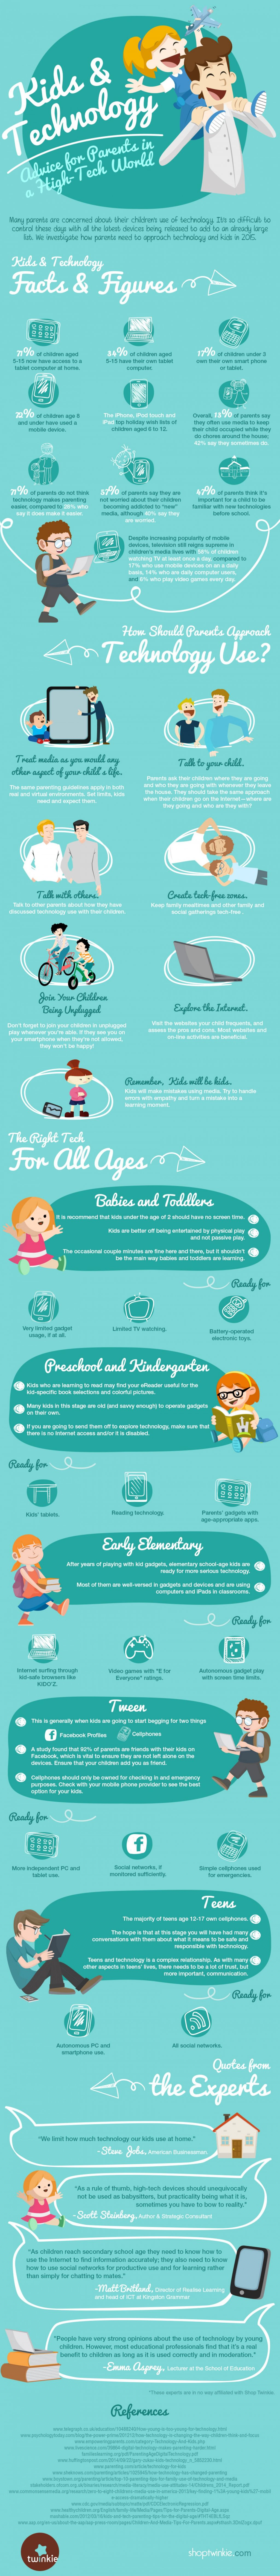 kids-and-technology-advice-for-parents-in-a-hightech-world_5658b4f7ef91a_w1500